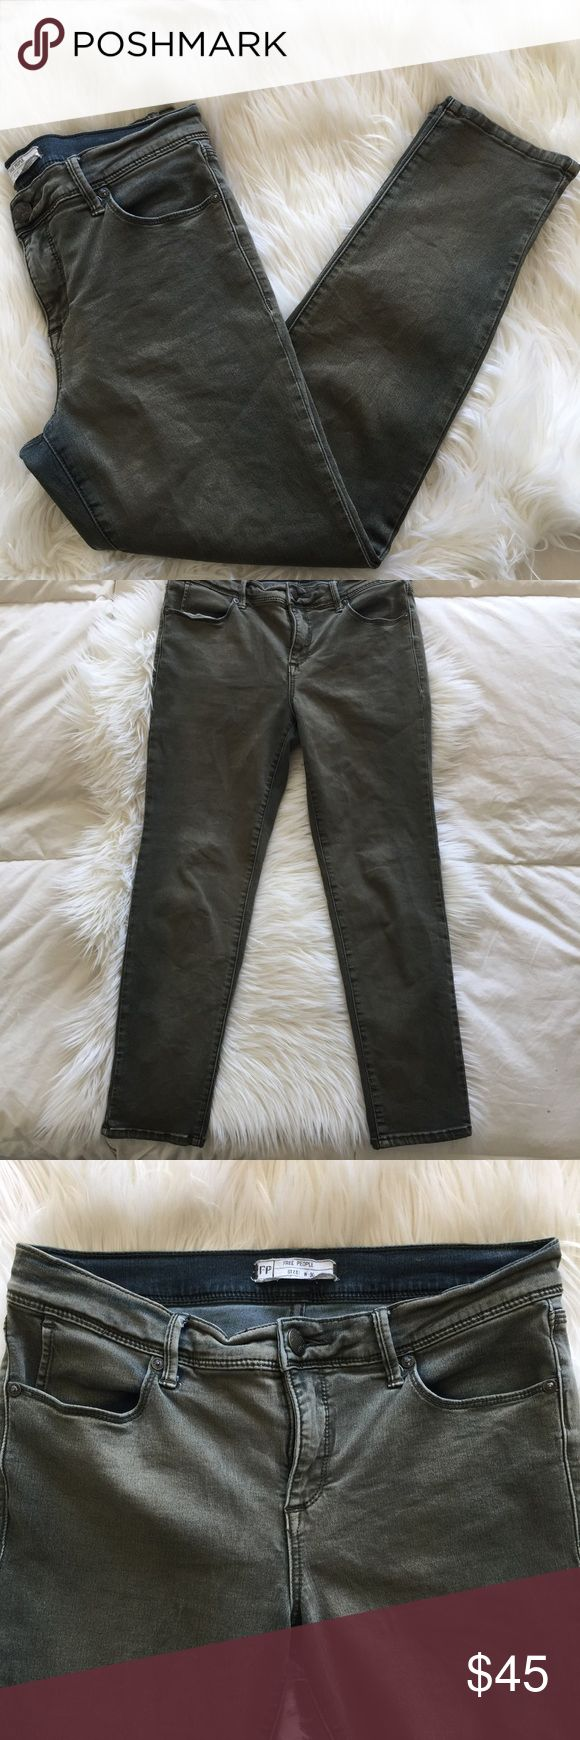 "Free People Dark Green Ankle Skinny Jeans Free People Dark Green Ankle Skinny Jeans Approximate inseam: 26"" Approximate Rise: 9"" 53% Cotton 23% Rayon 22% Polyester  2% Spandex Free People Jeans"